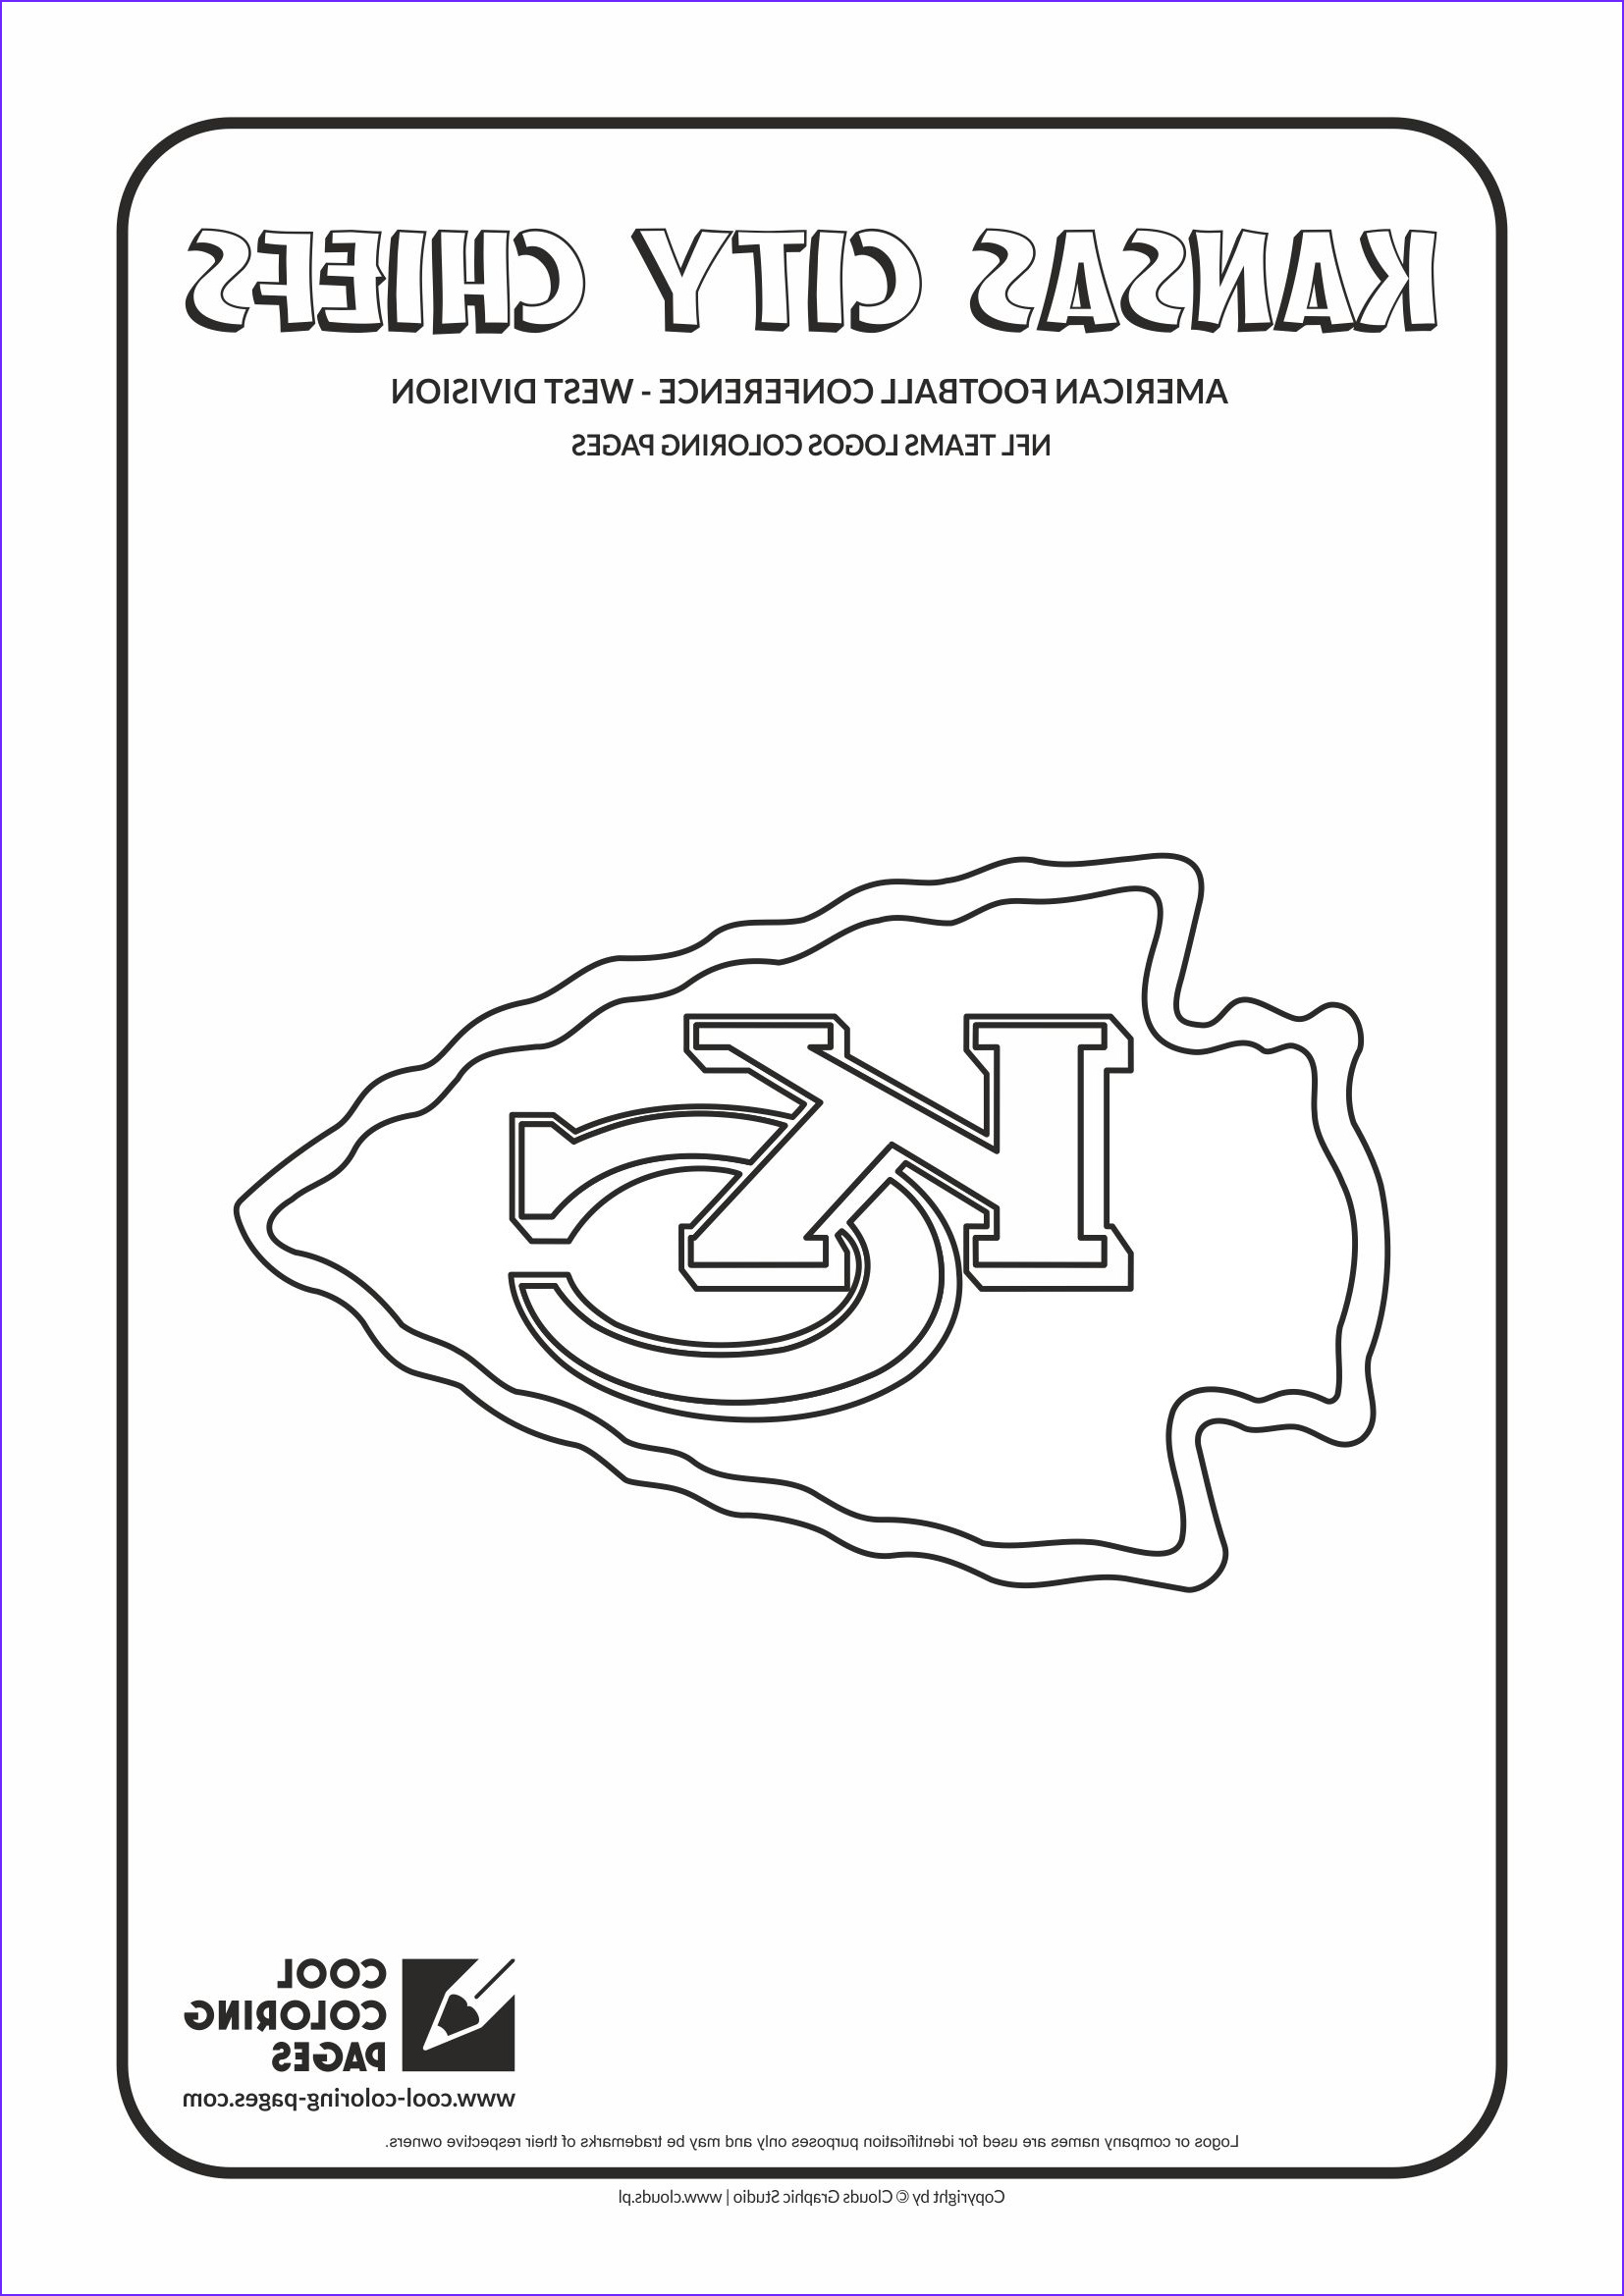 Kc Chiefs Coloring Page Luxury Collection Cool Coloring Pages Nfl Teams Logos Coloring Pages Cool